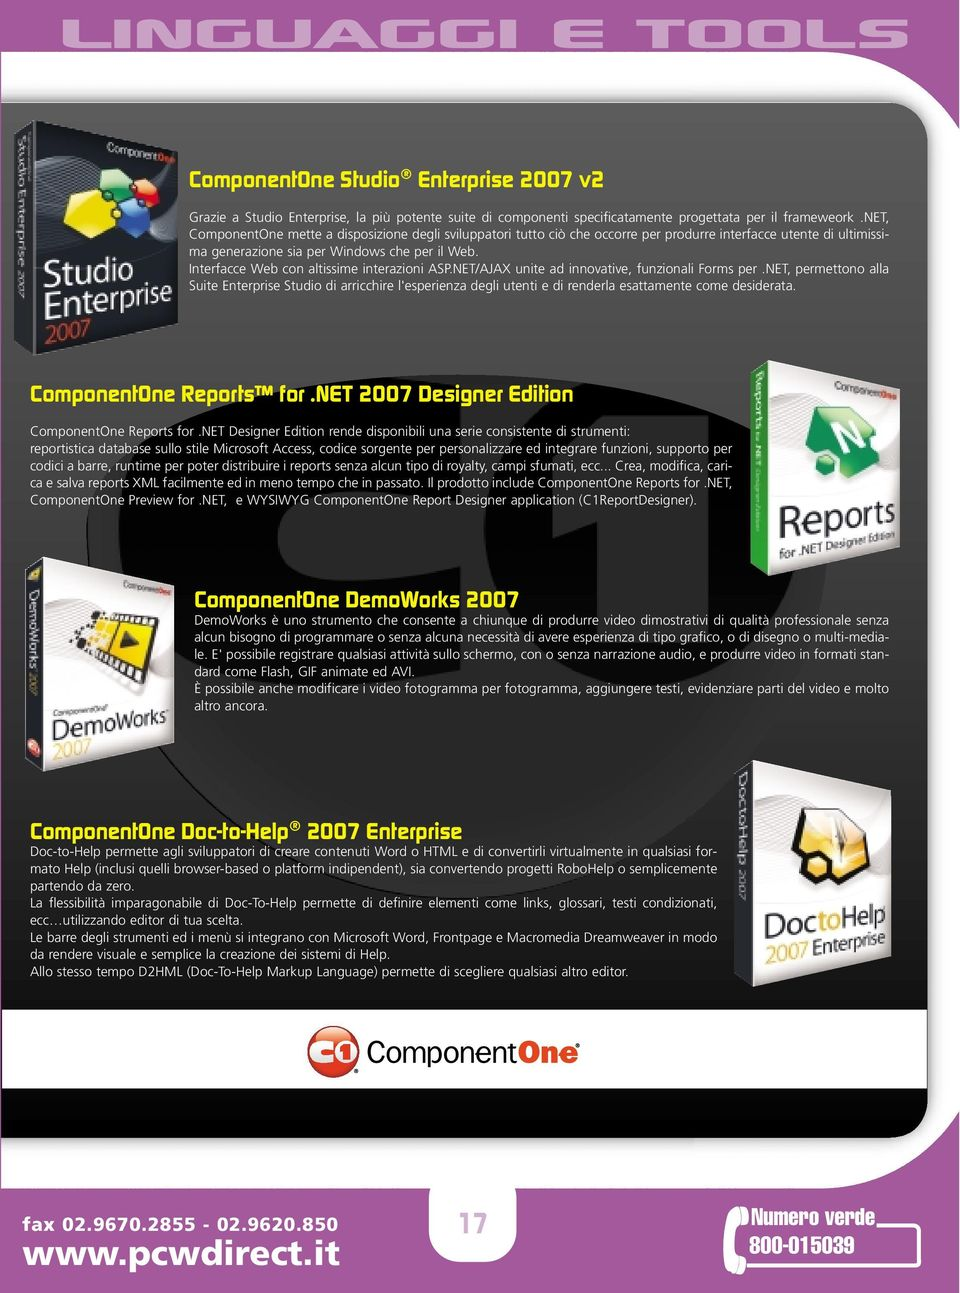 Interfacce Web con altissime interazioni ASP.NET/AJAX unite ad innovative, funzionali Forms per.